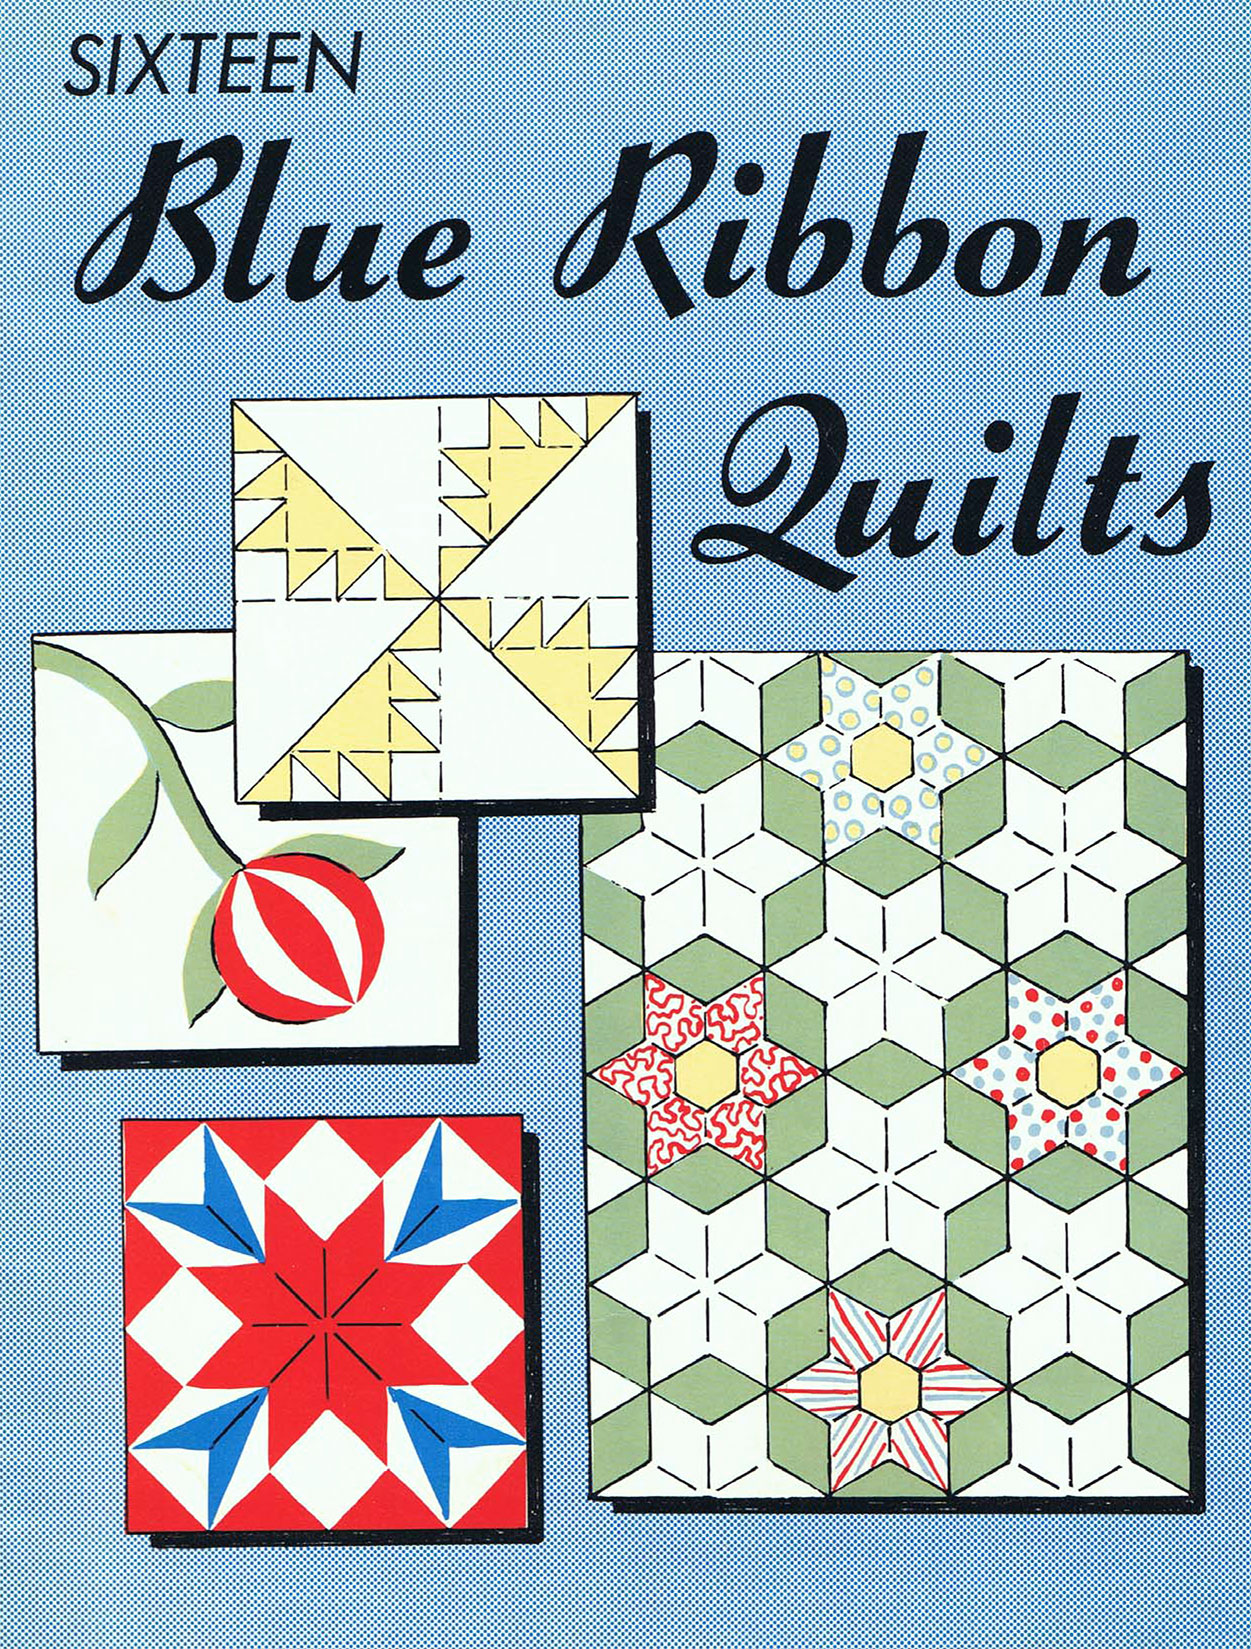 Sixteen-Blue-Ribbon-Quilts-1